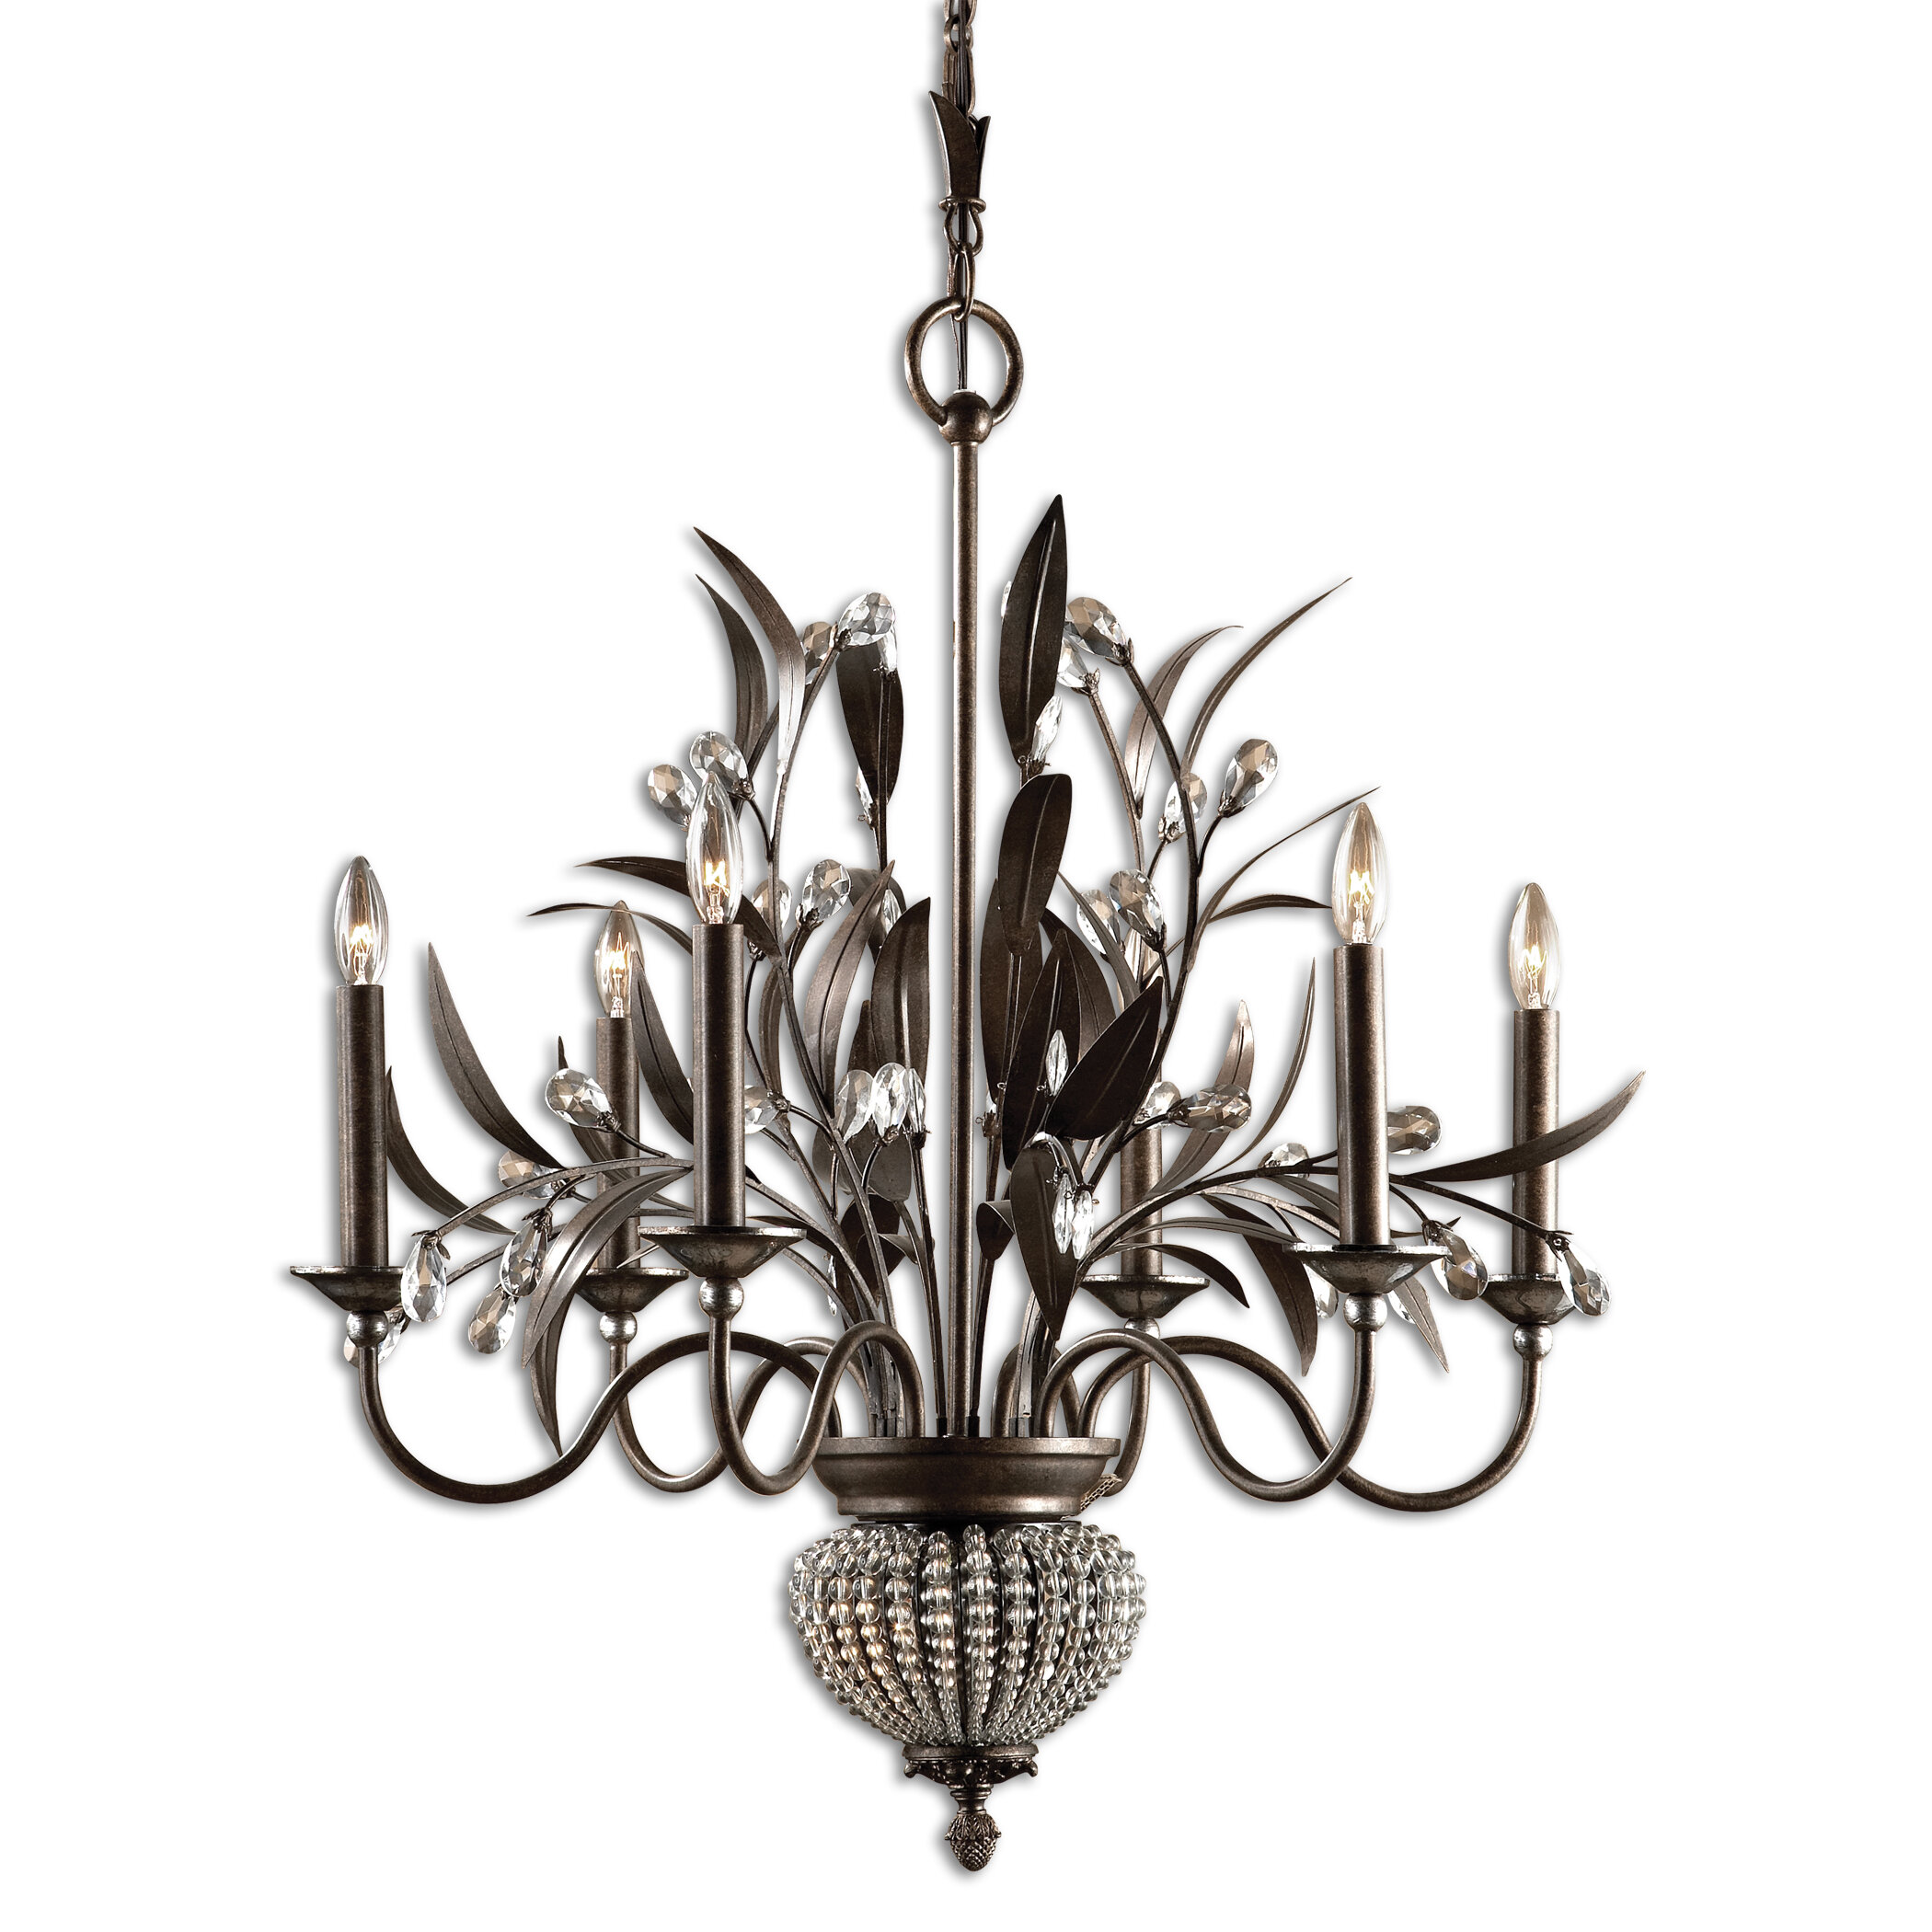 Candle Style Astoria Grand Chandeliers You Ll Love In 2021 Wayfair